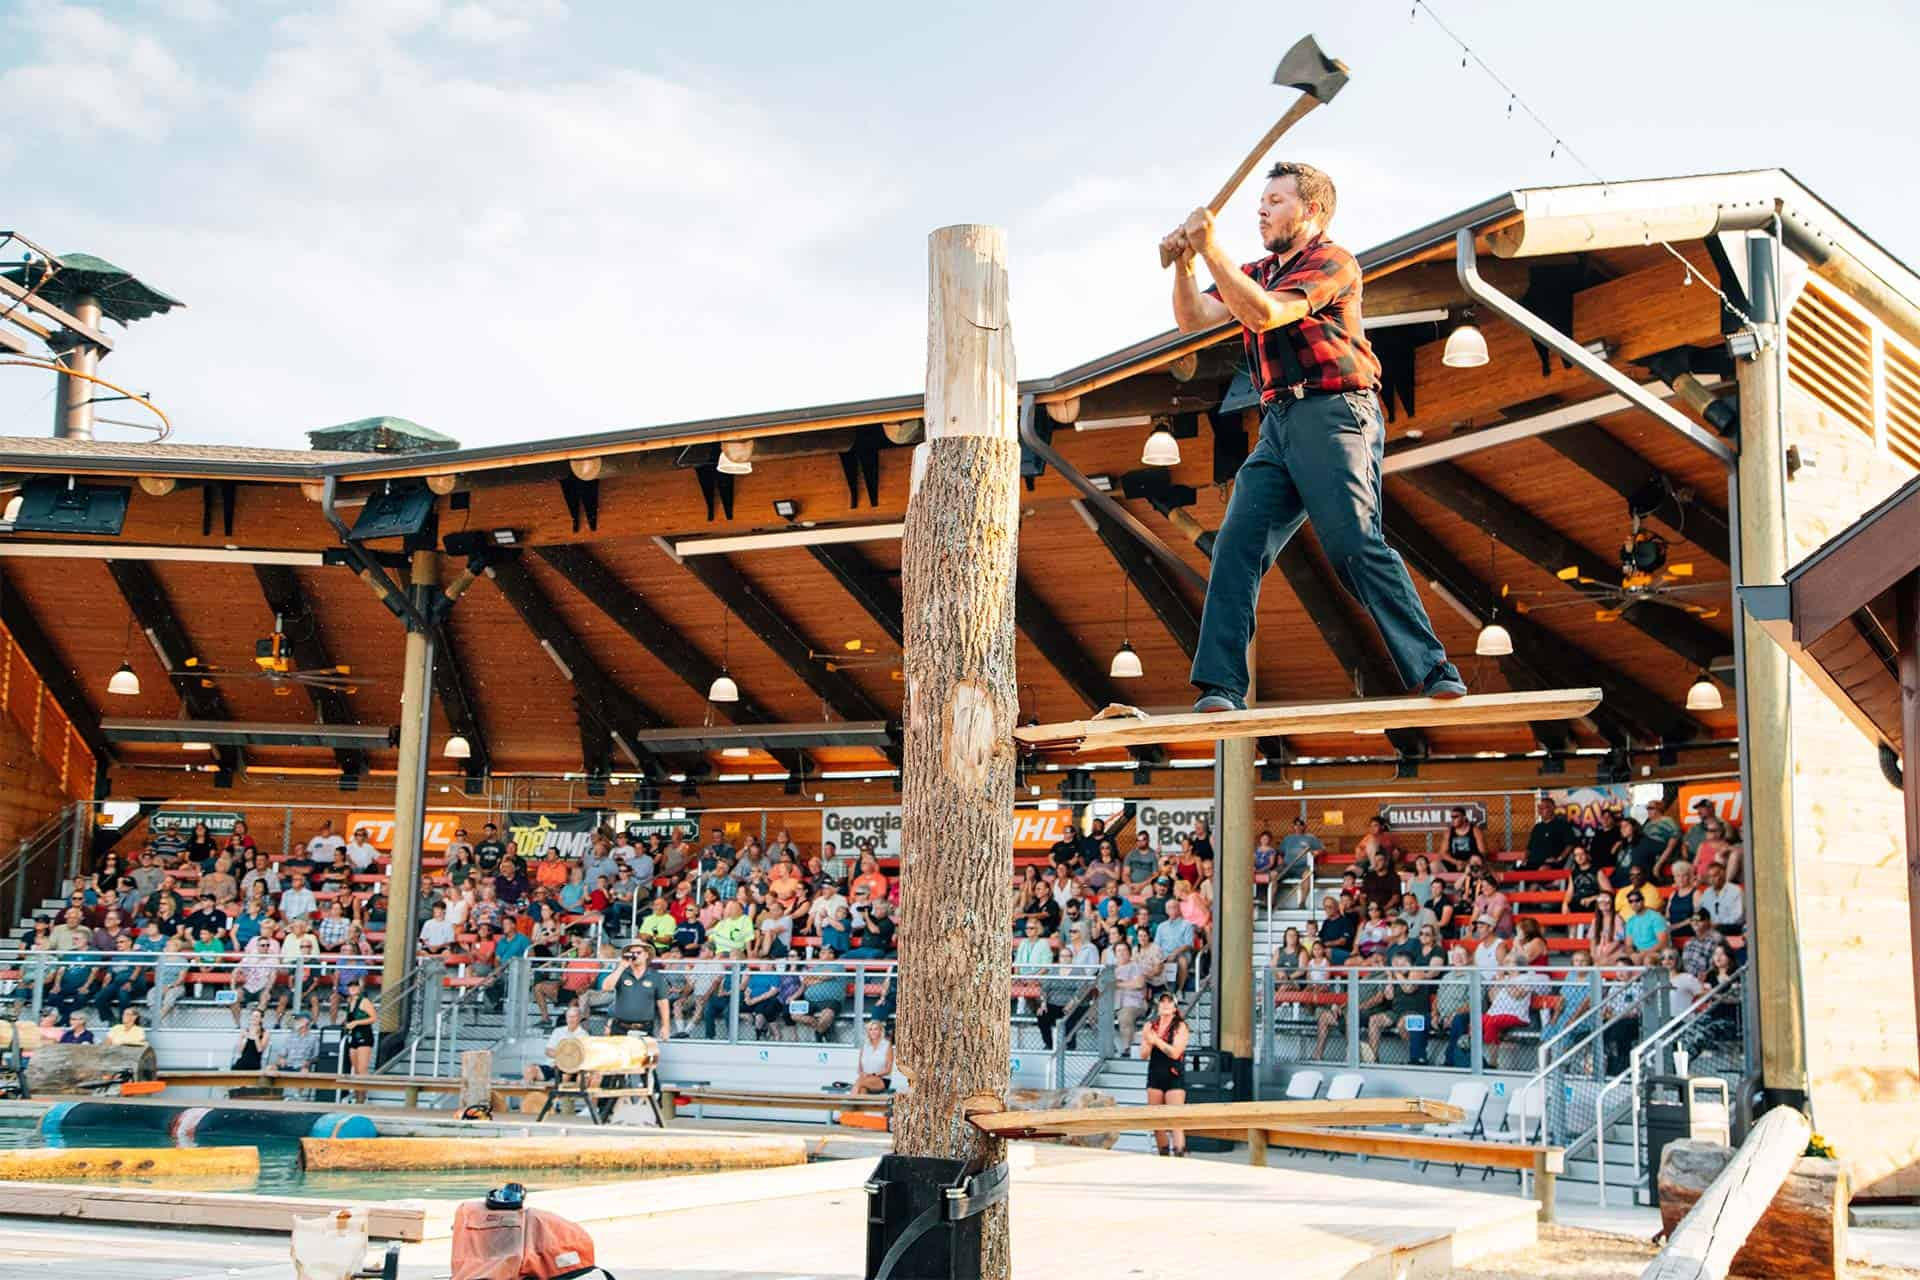 spring board chop during lumberjack show in pigeon forge